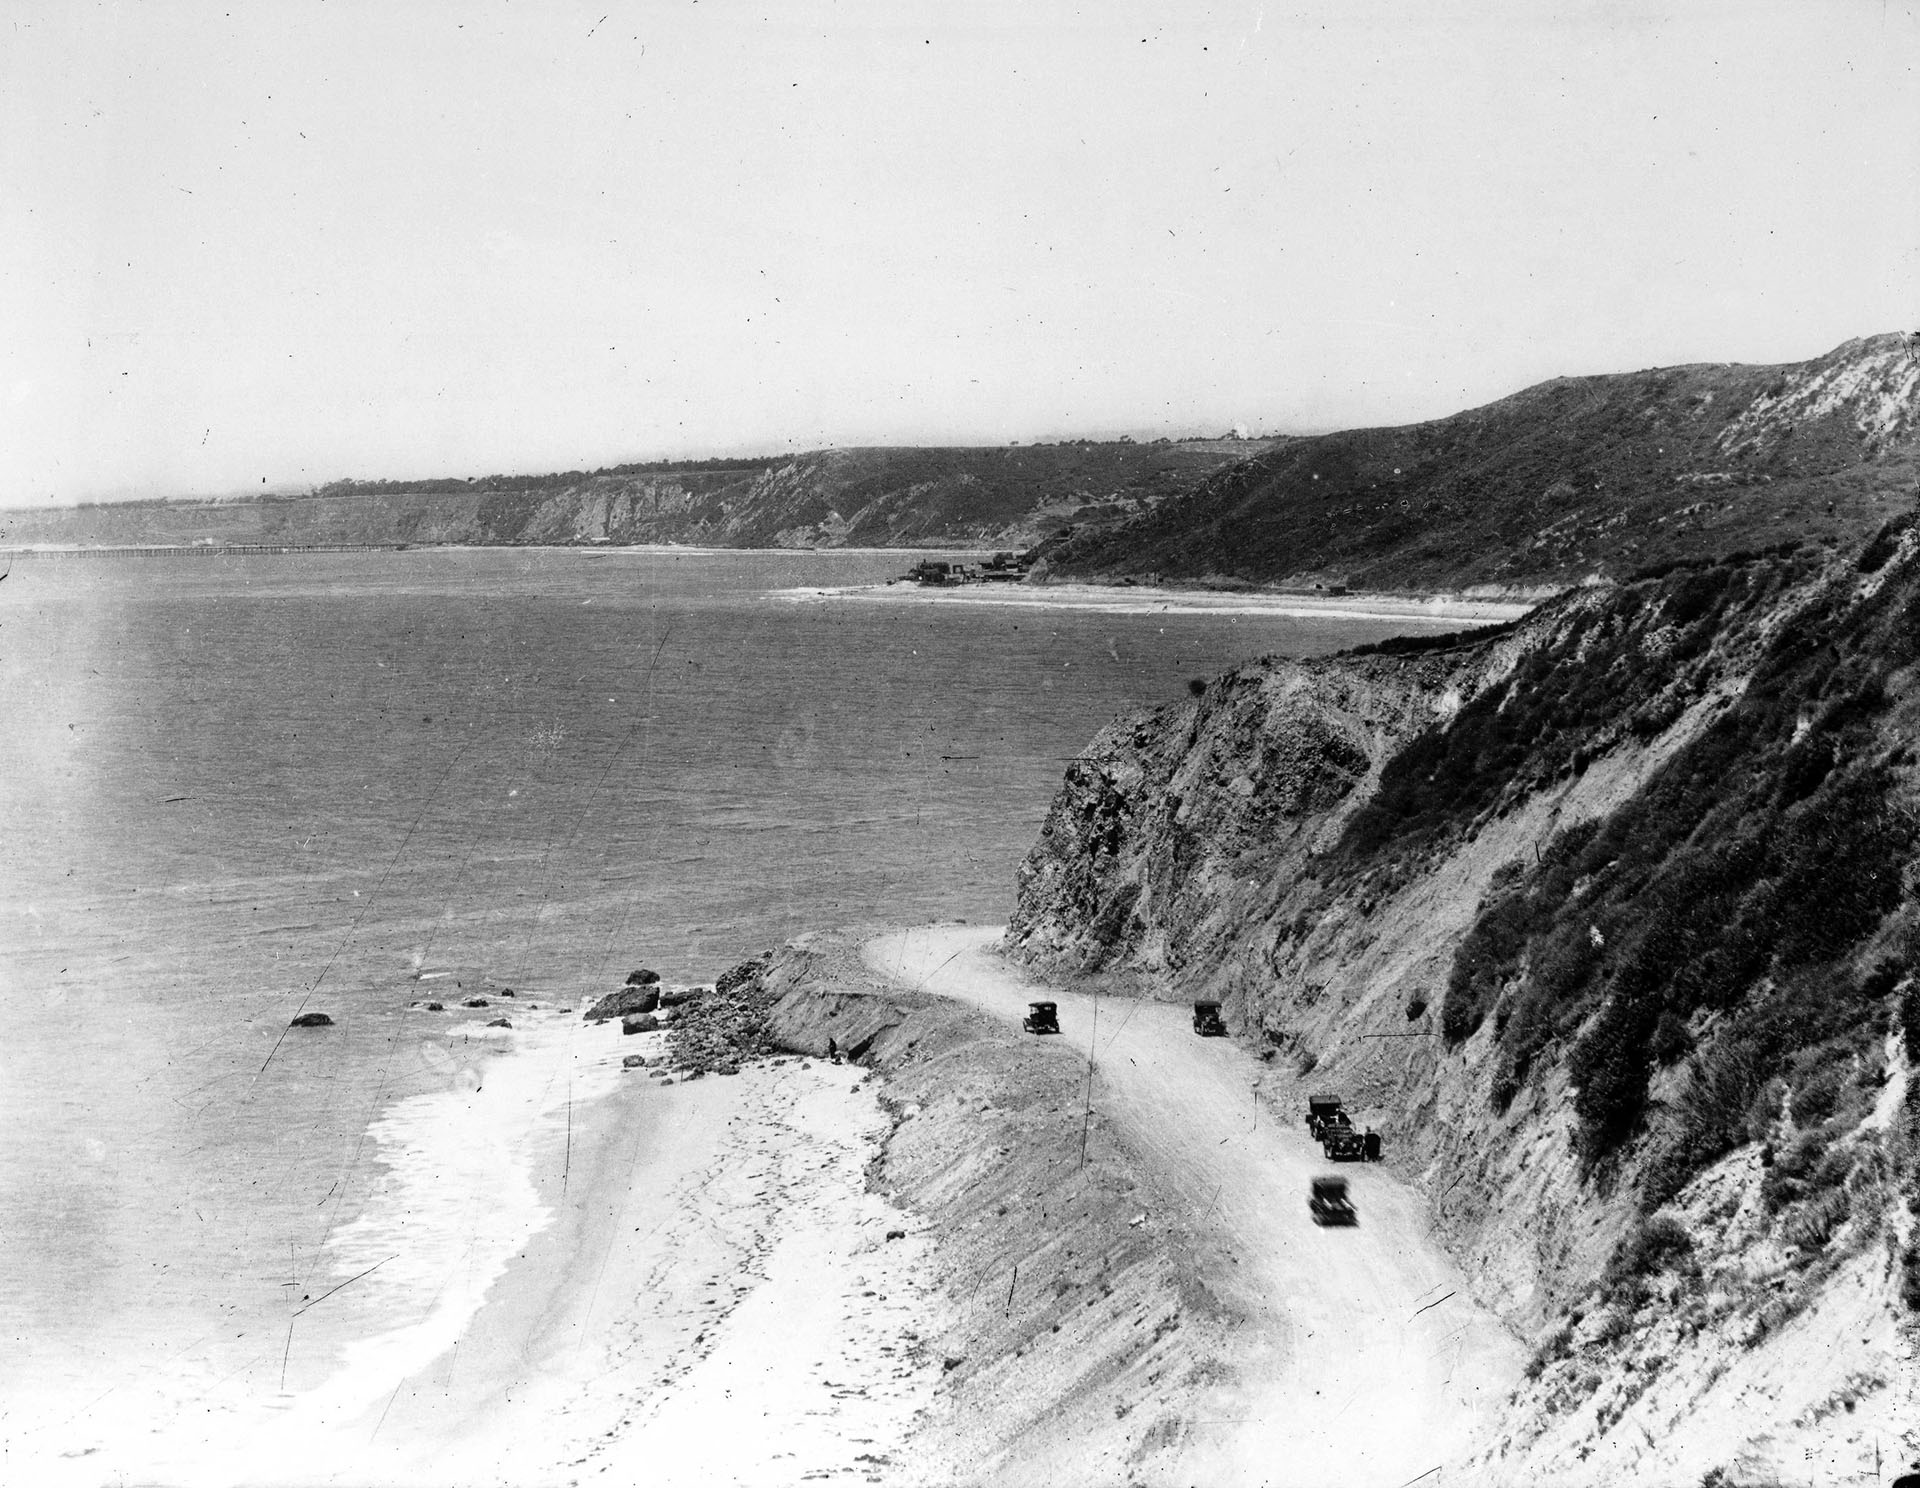 Site of Arch Rock after its demolition and subsequent highway grading. Courtesy of the Title Insurance and Trust, and C.C. Pierce Photography Collection, USC Libraries.